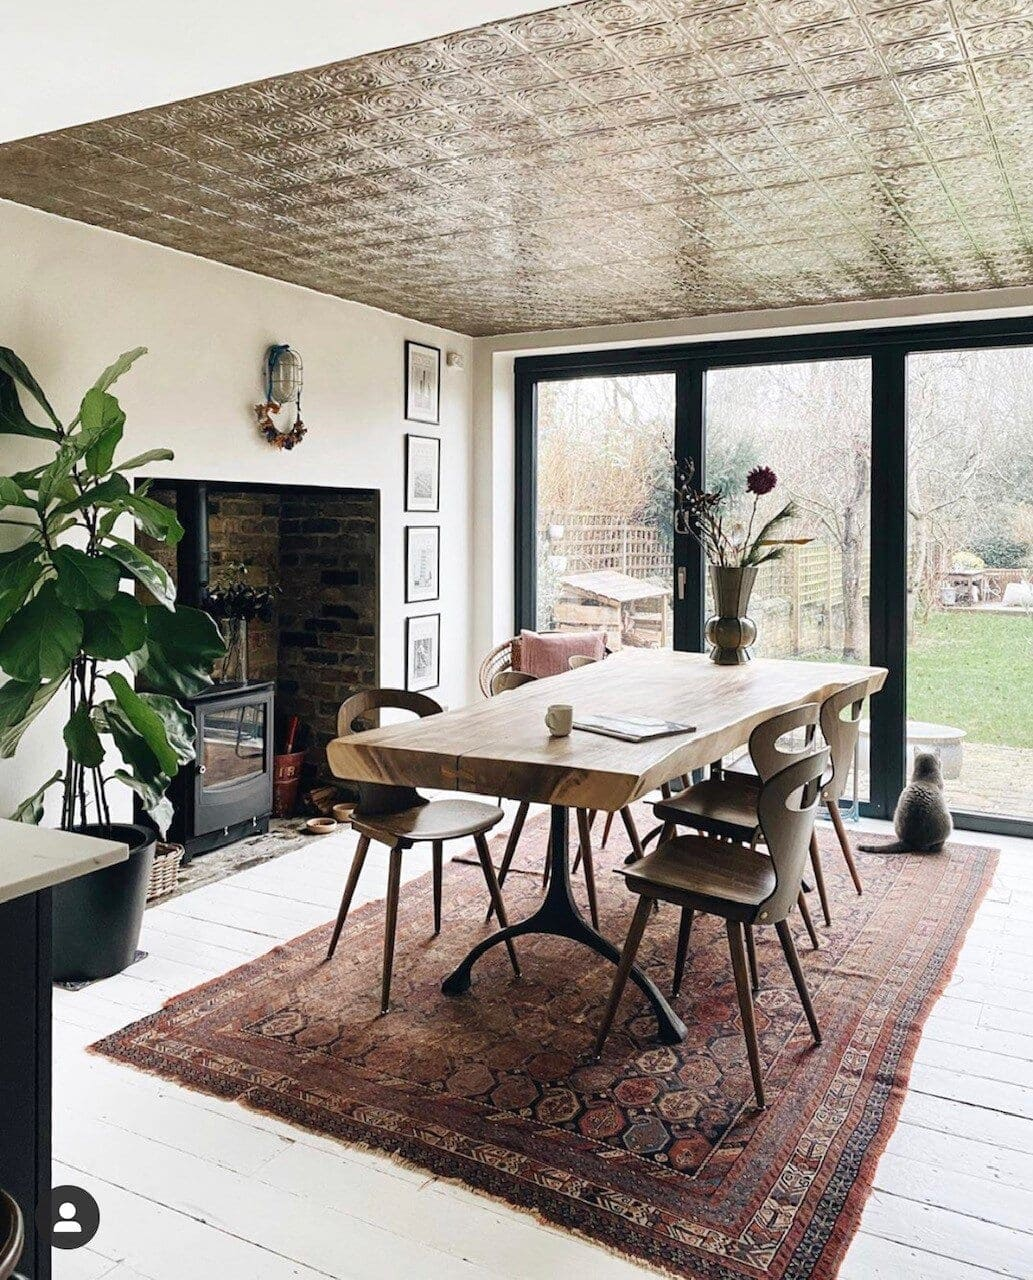 Kate keeps the rest of this beautiful space quite neutral so your eyes are automatically drawn up to these amazing tiles. Although the ceiling is quite low, the light and reflection makes you feel that the room is a lot larger than it is. Credit:  @mad_about_the_house